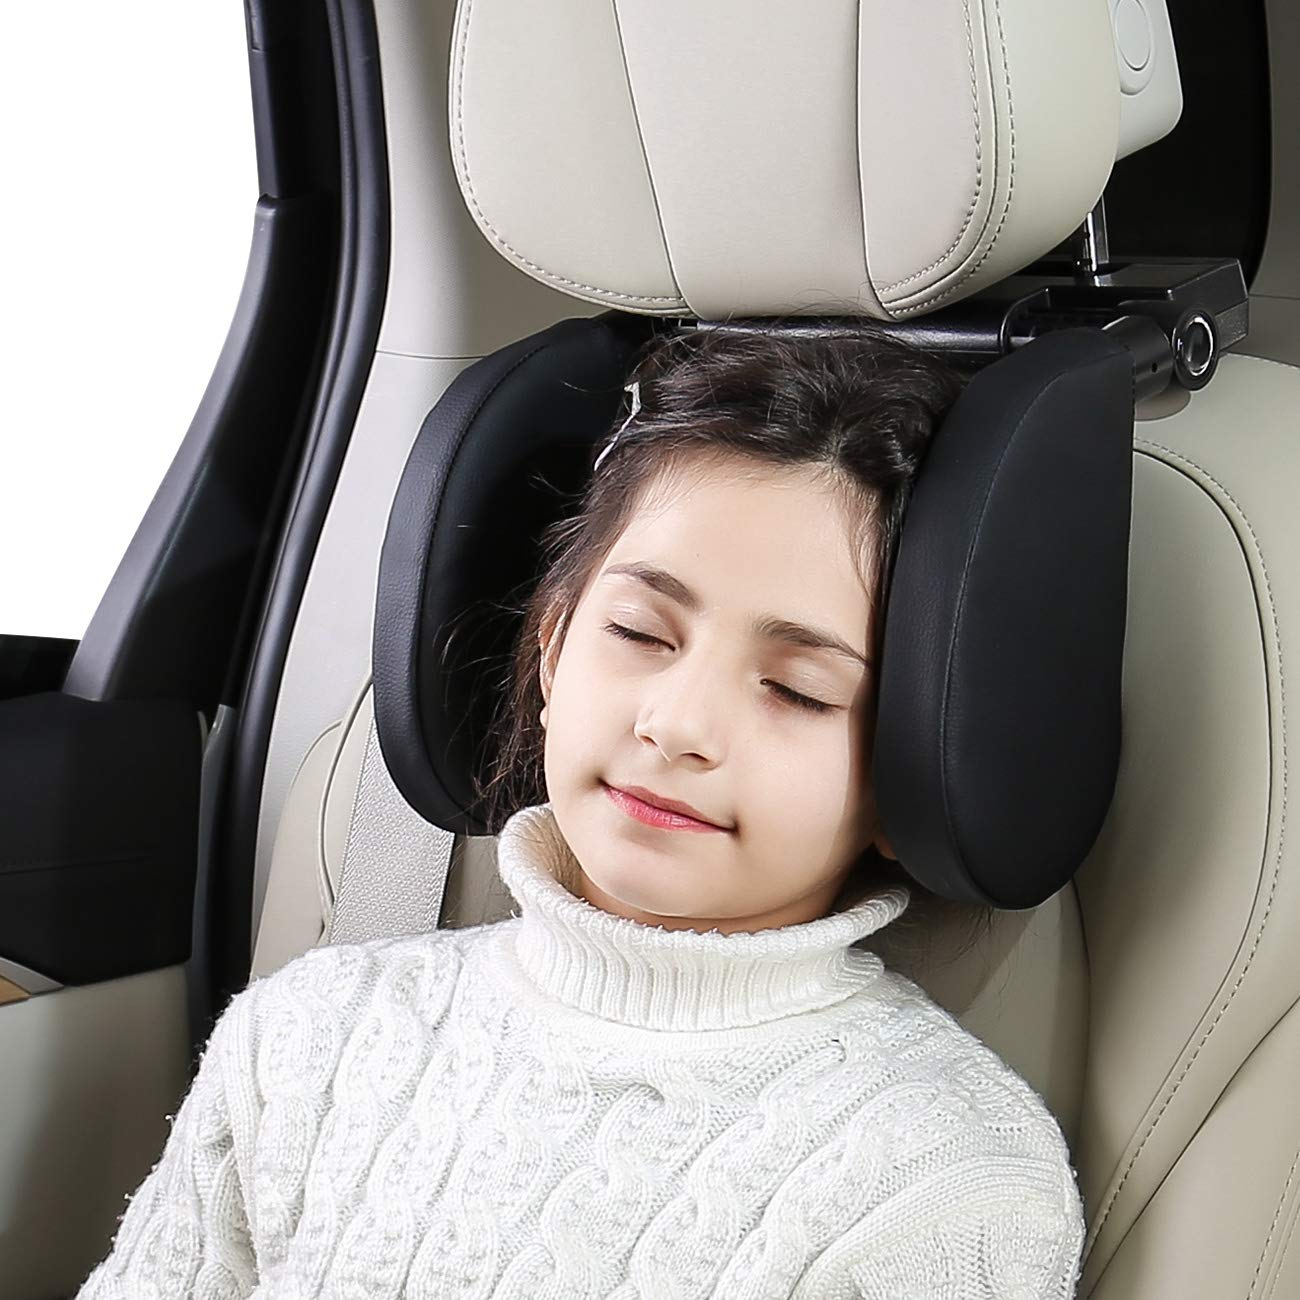 ABE Car Headrest Pillow - Road Pal Headrest - Adjustable Leather Car Seat Head Neck Support Resting Pillow - Detachable Car Travel Sleeping Pillow for Kids Adults. (Black)